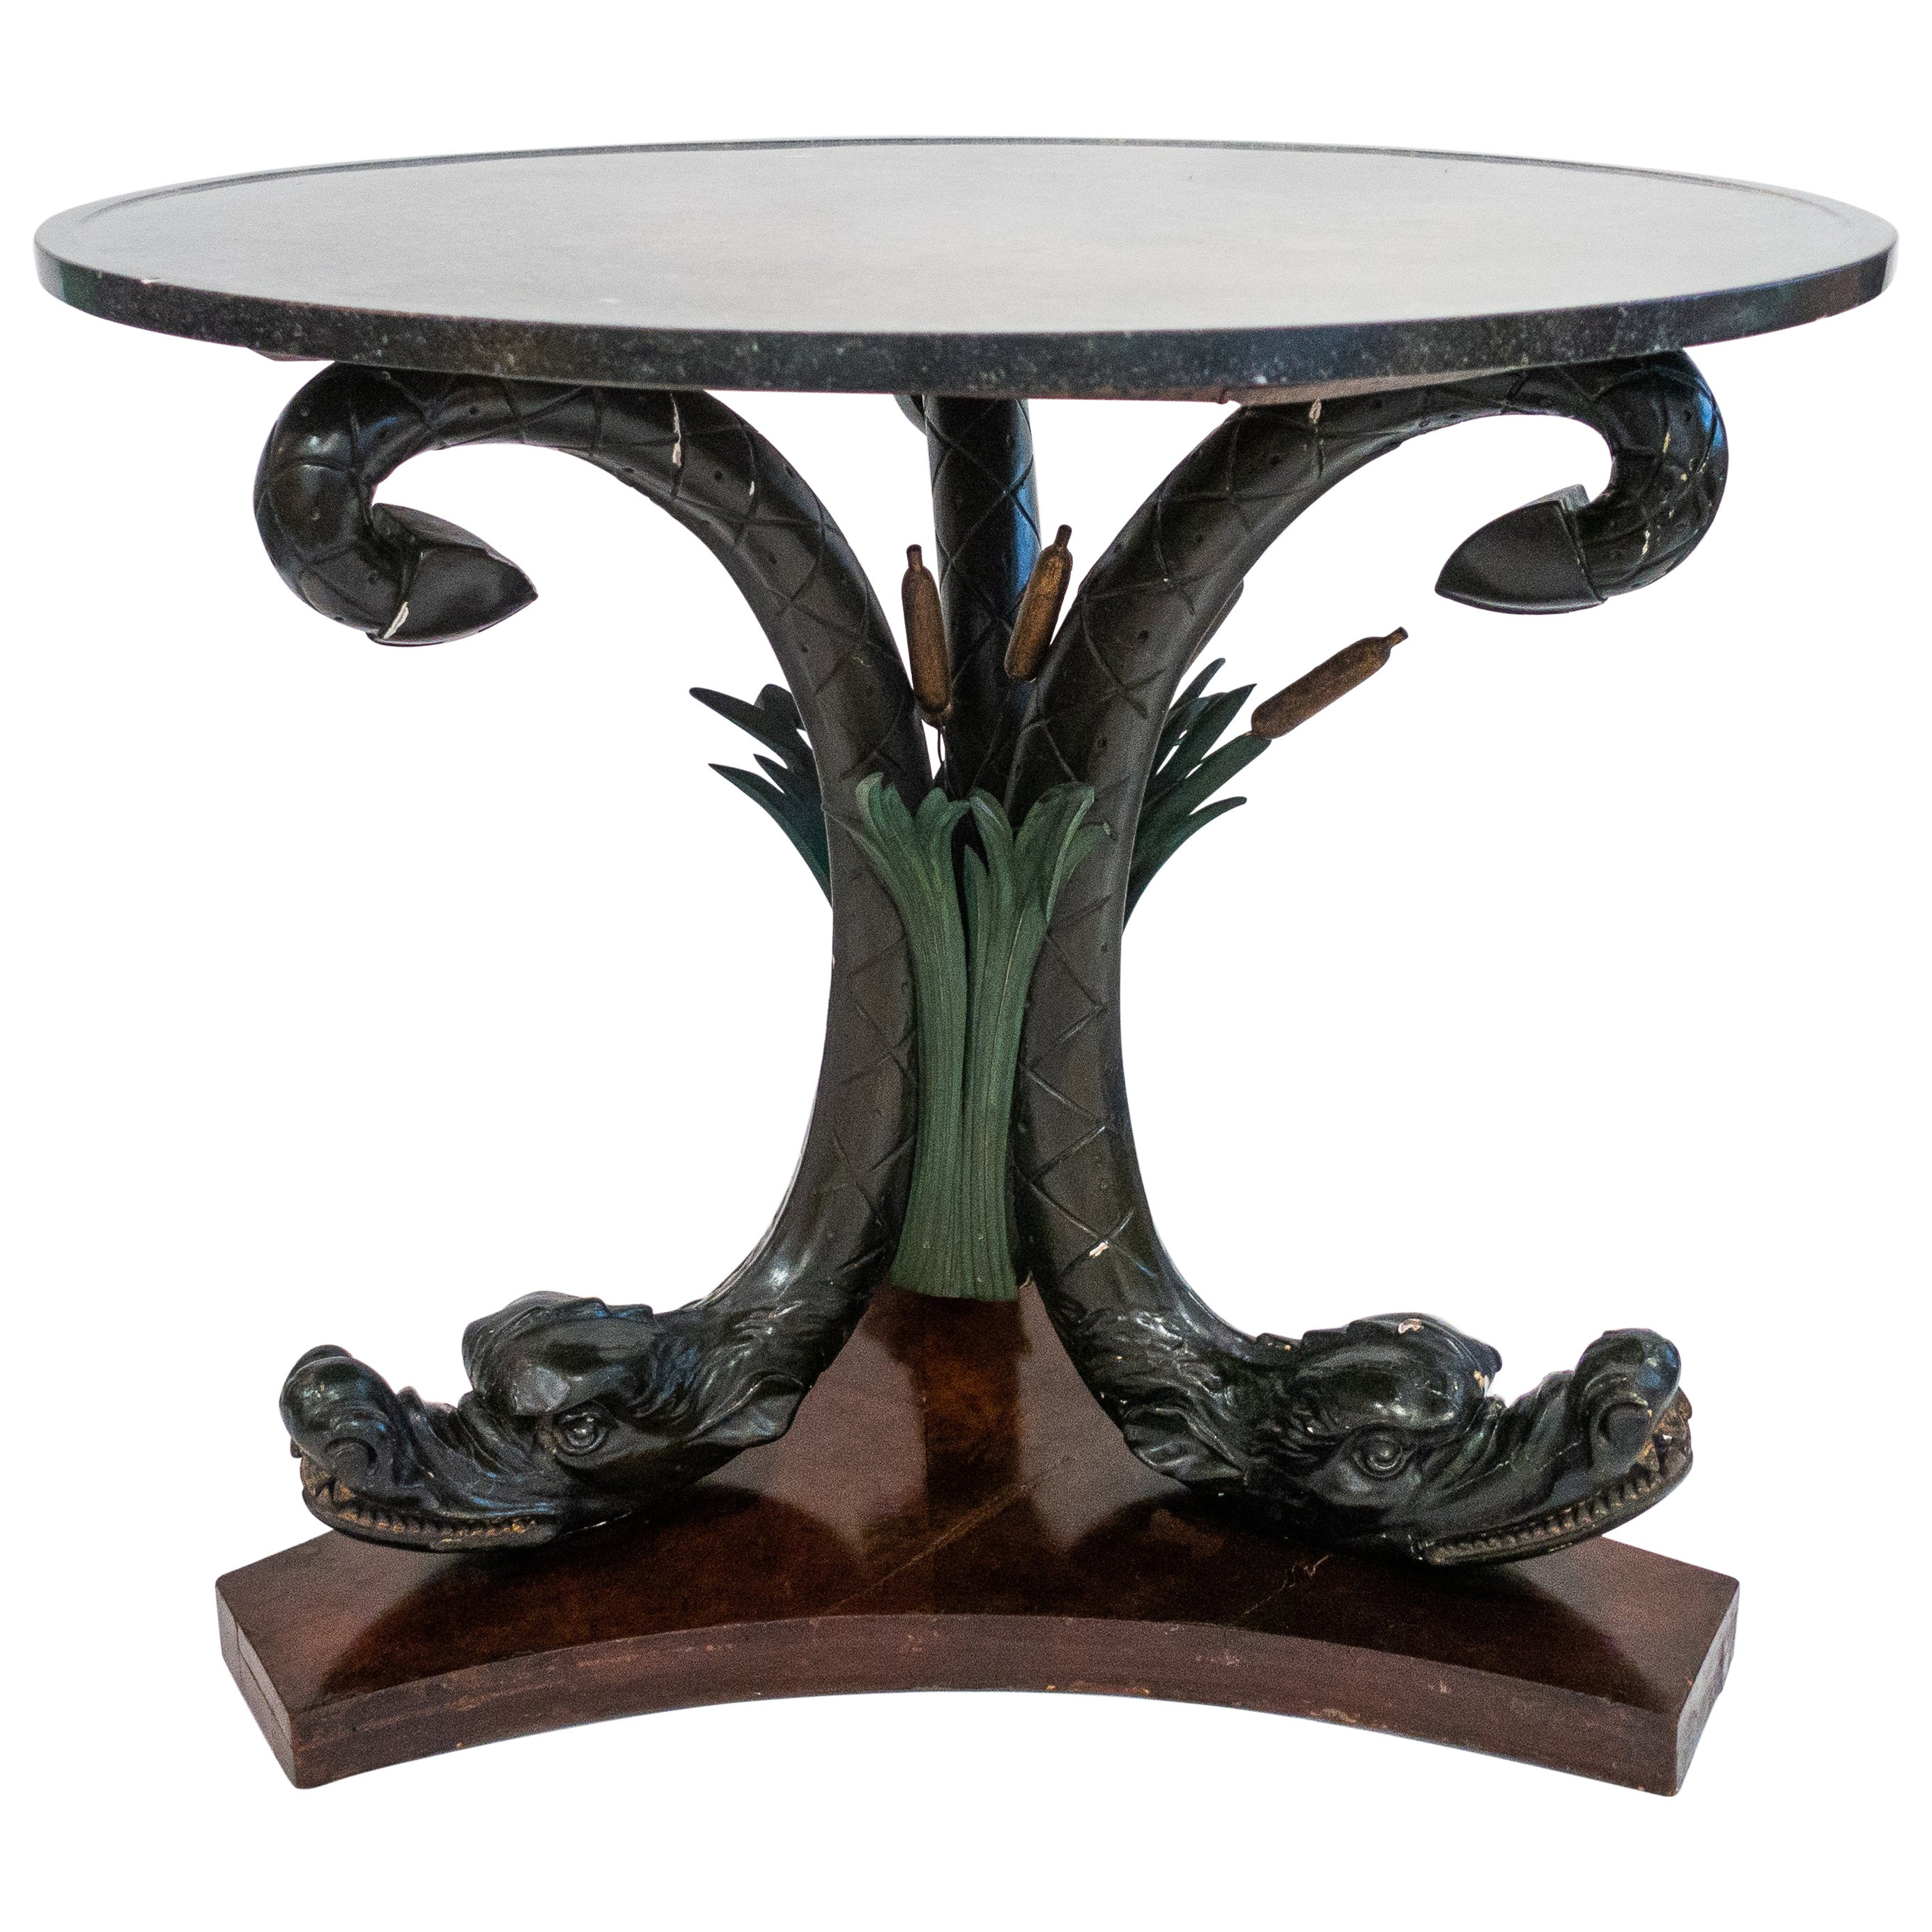 Austrian Neoclassical Center Table, Late 19th Century